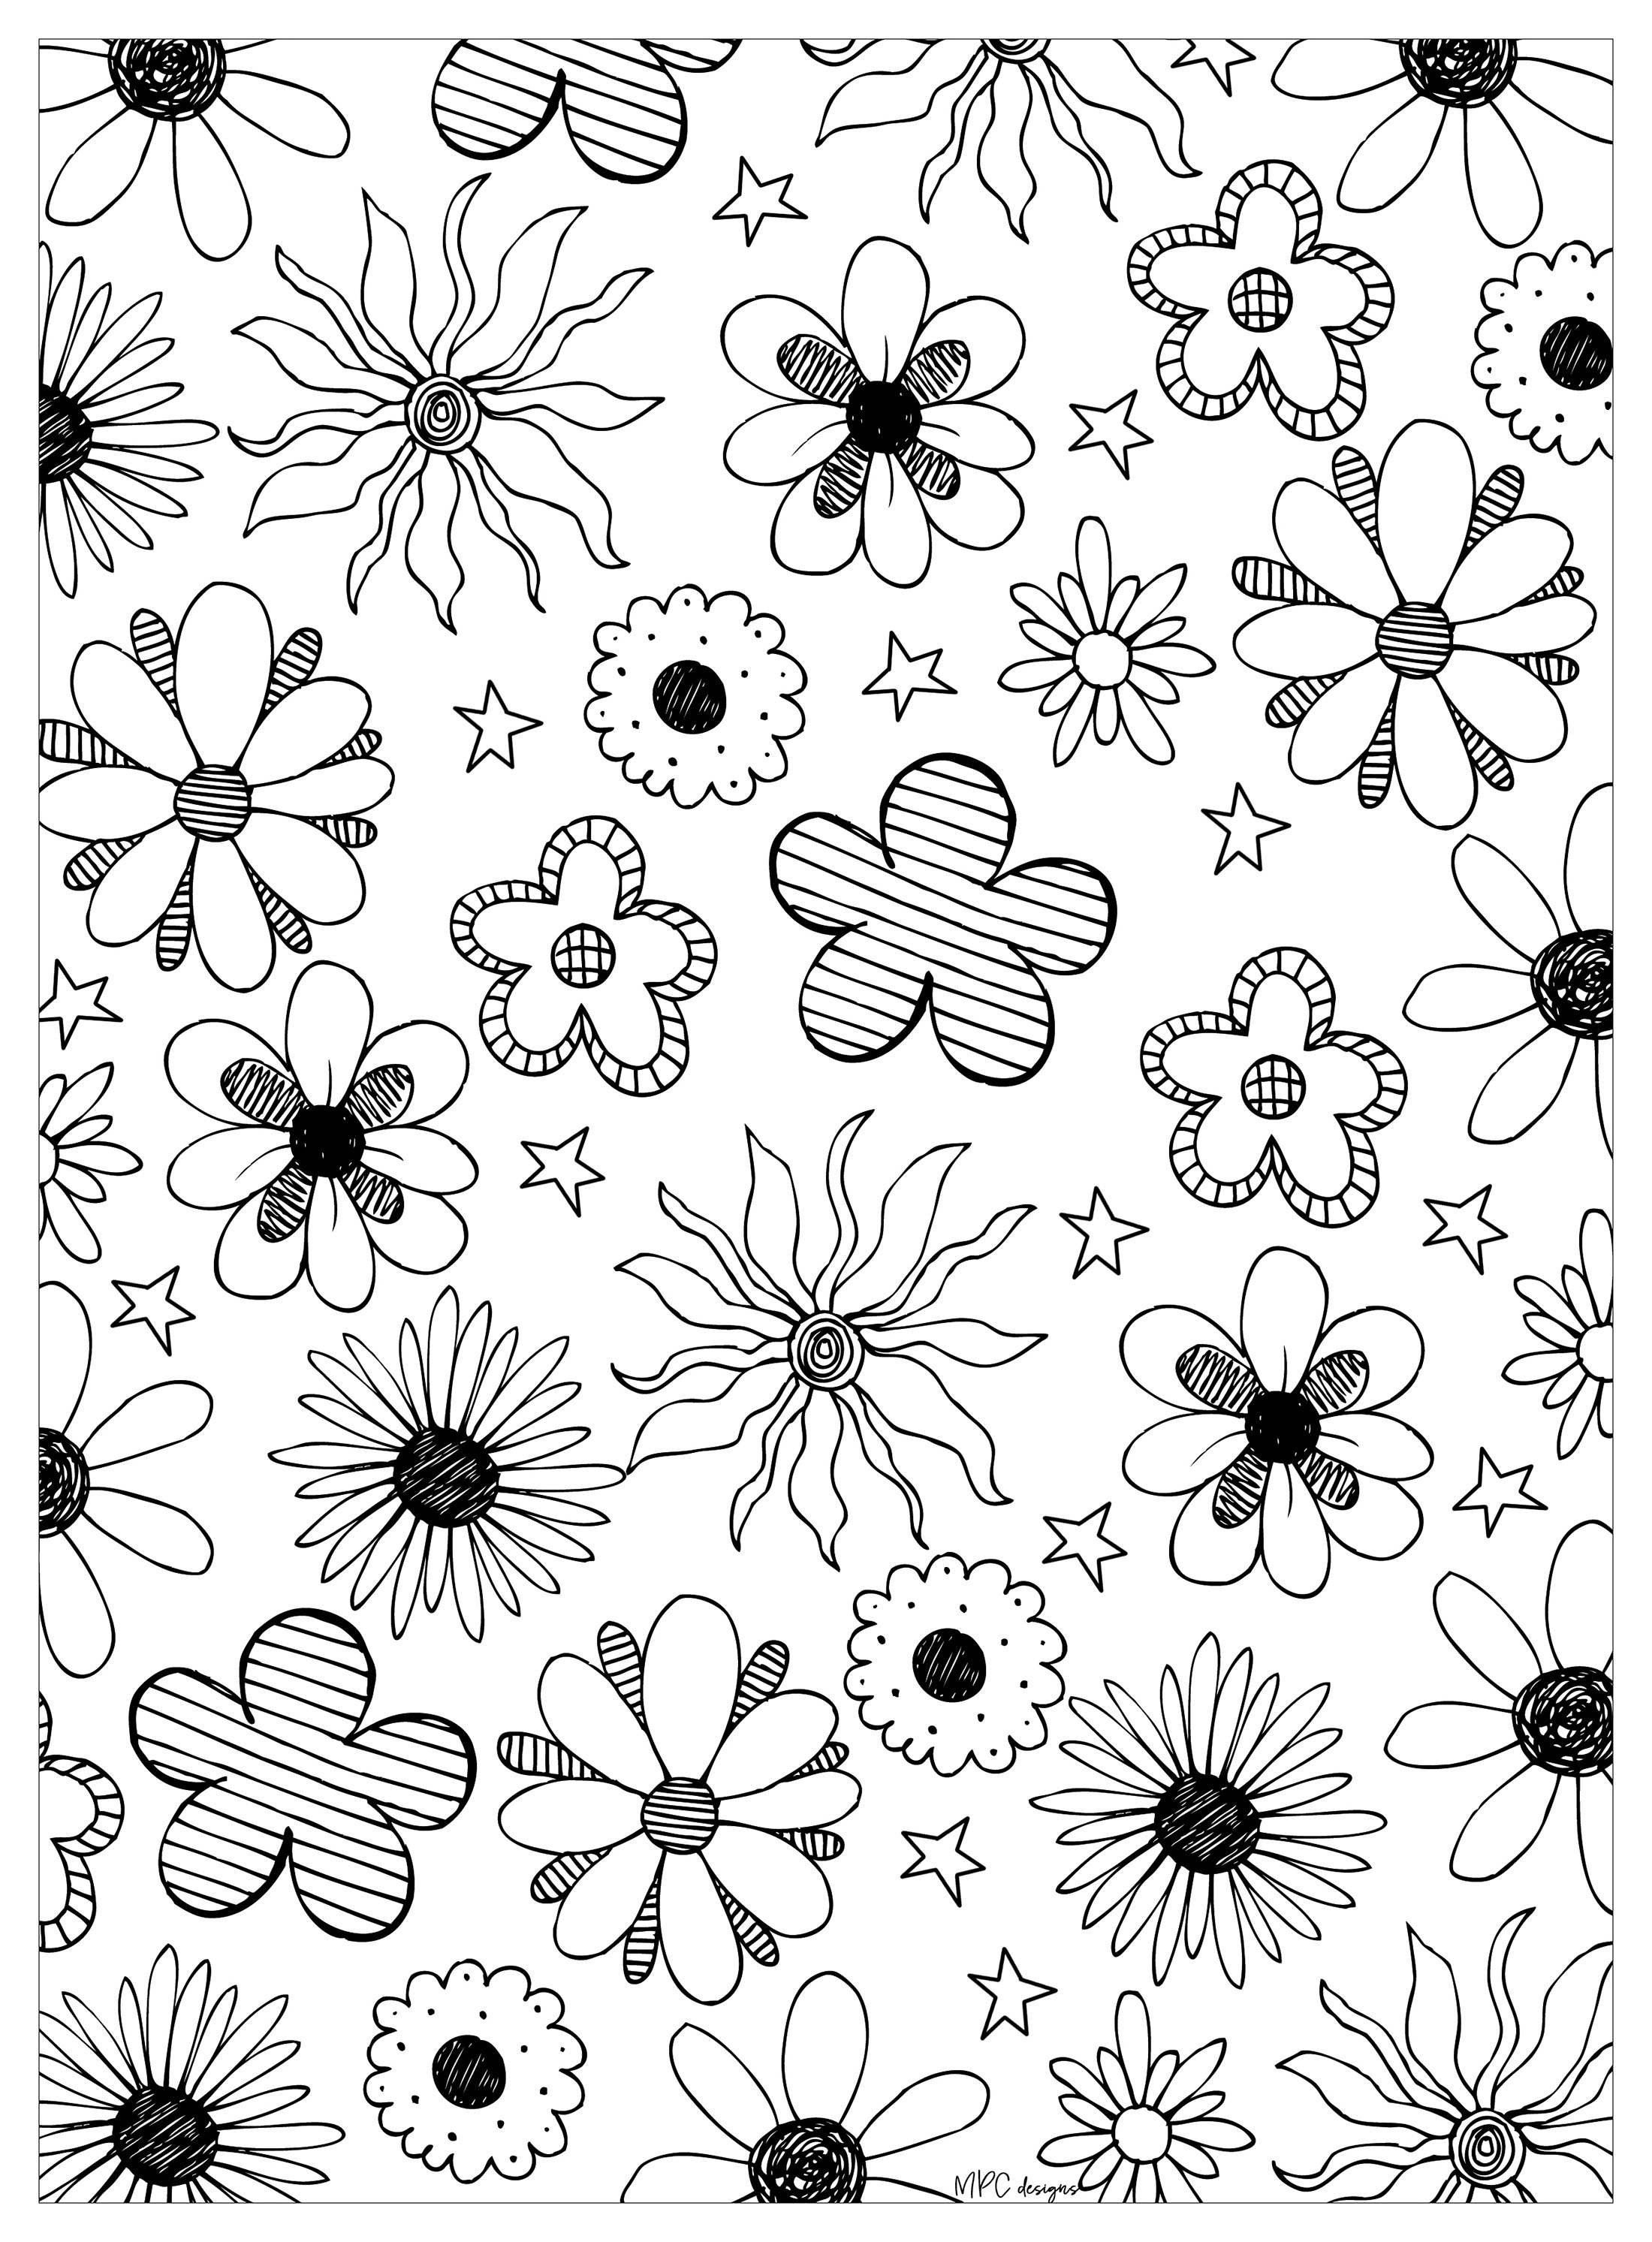 Flowers to color for children - Flowers - Coloring pages for kids